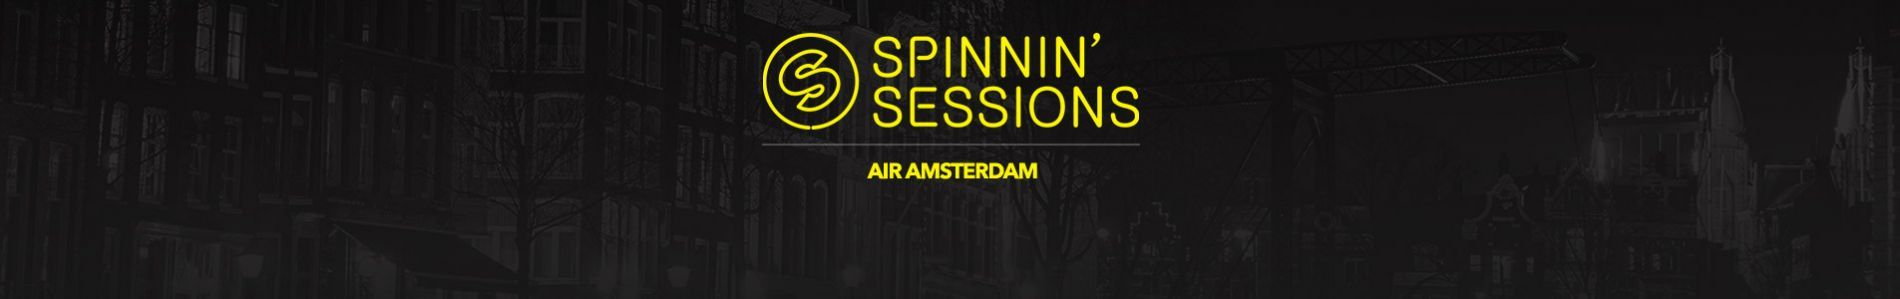 Spinnin' Sessions ADE 2016 - Spinnin' Sessions